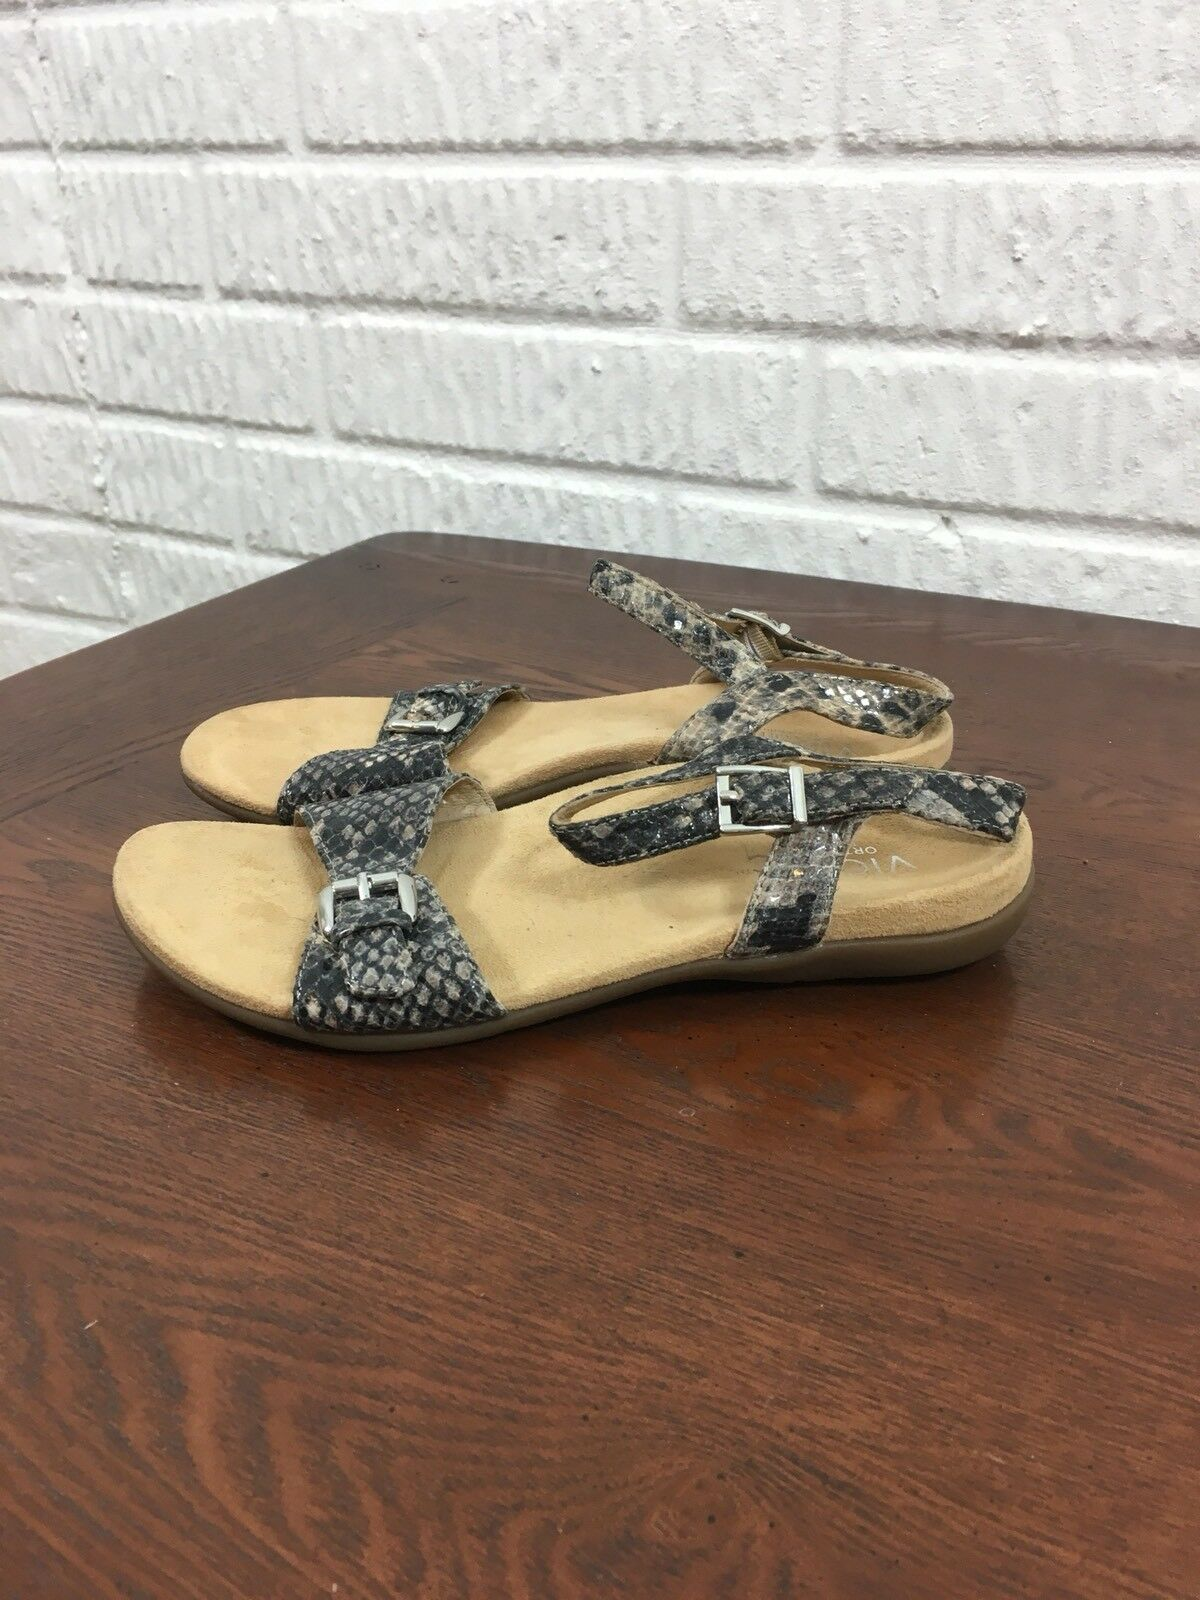 Vionic Alita Orthotic Leather Ankle Strap Snake Print Sandals Size US 6